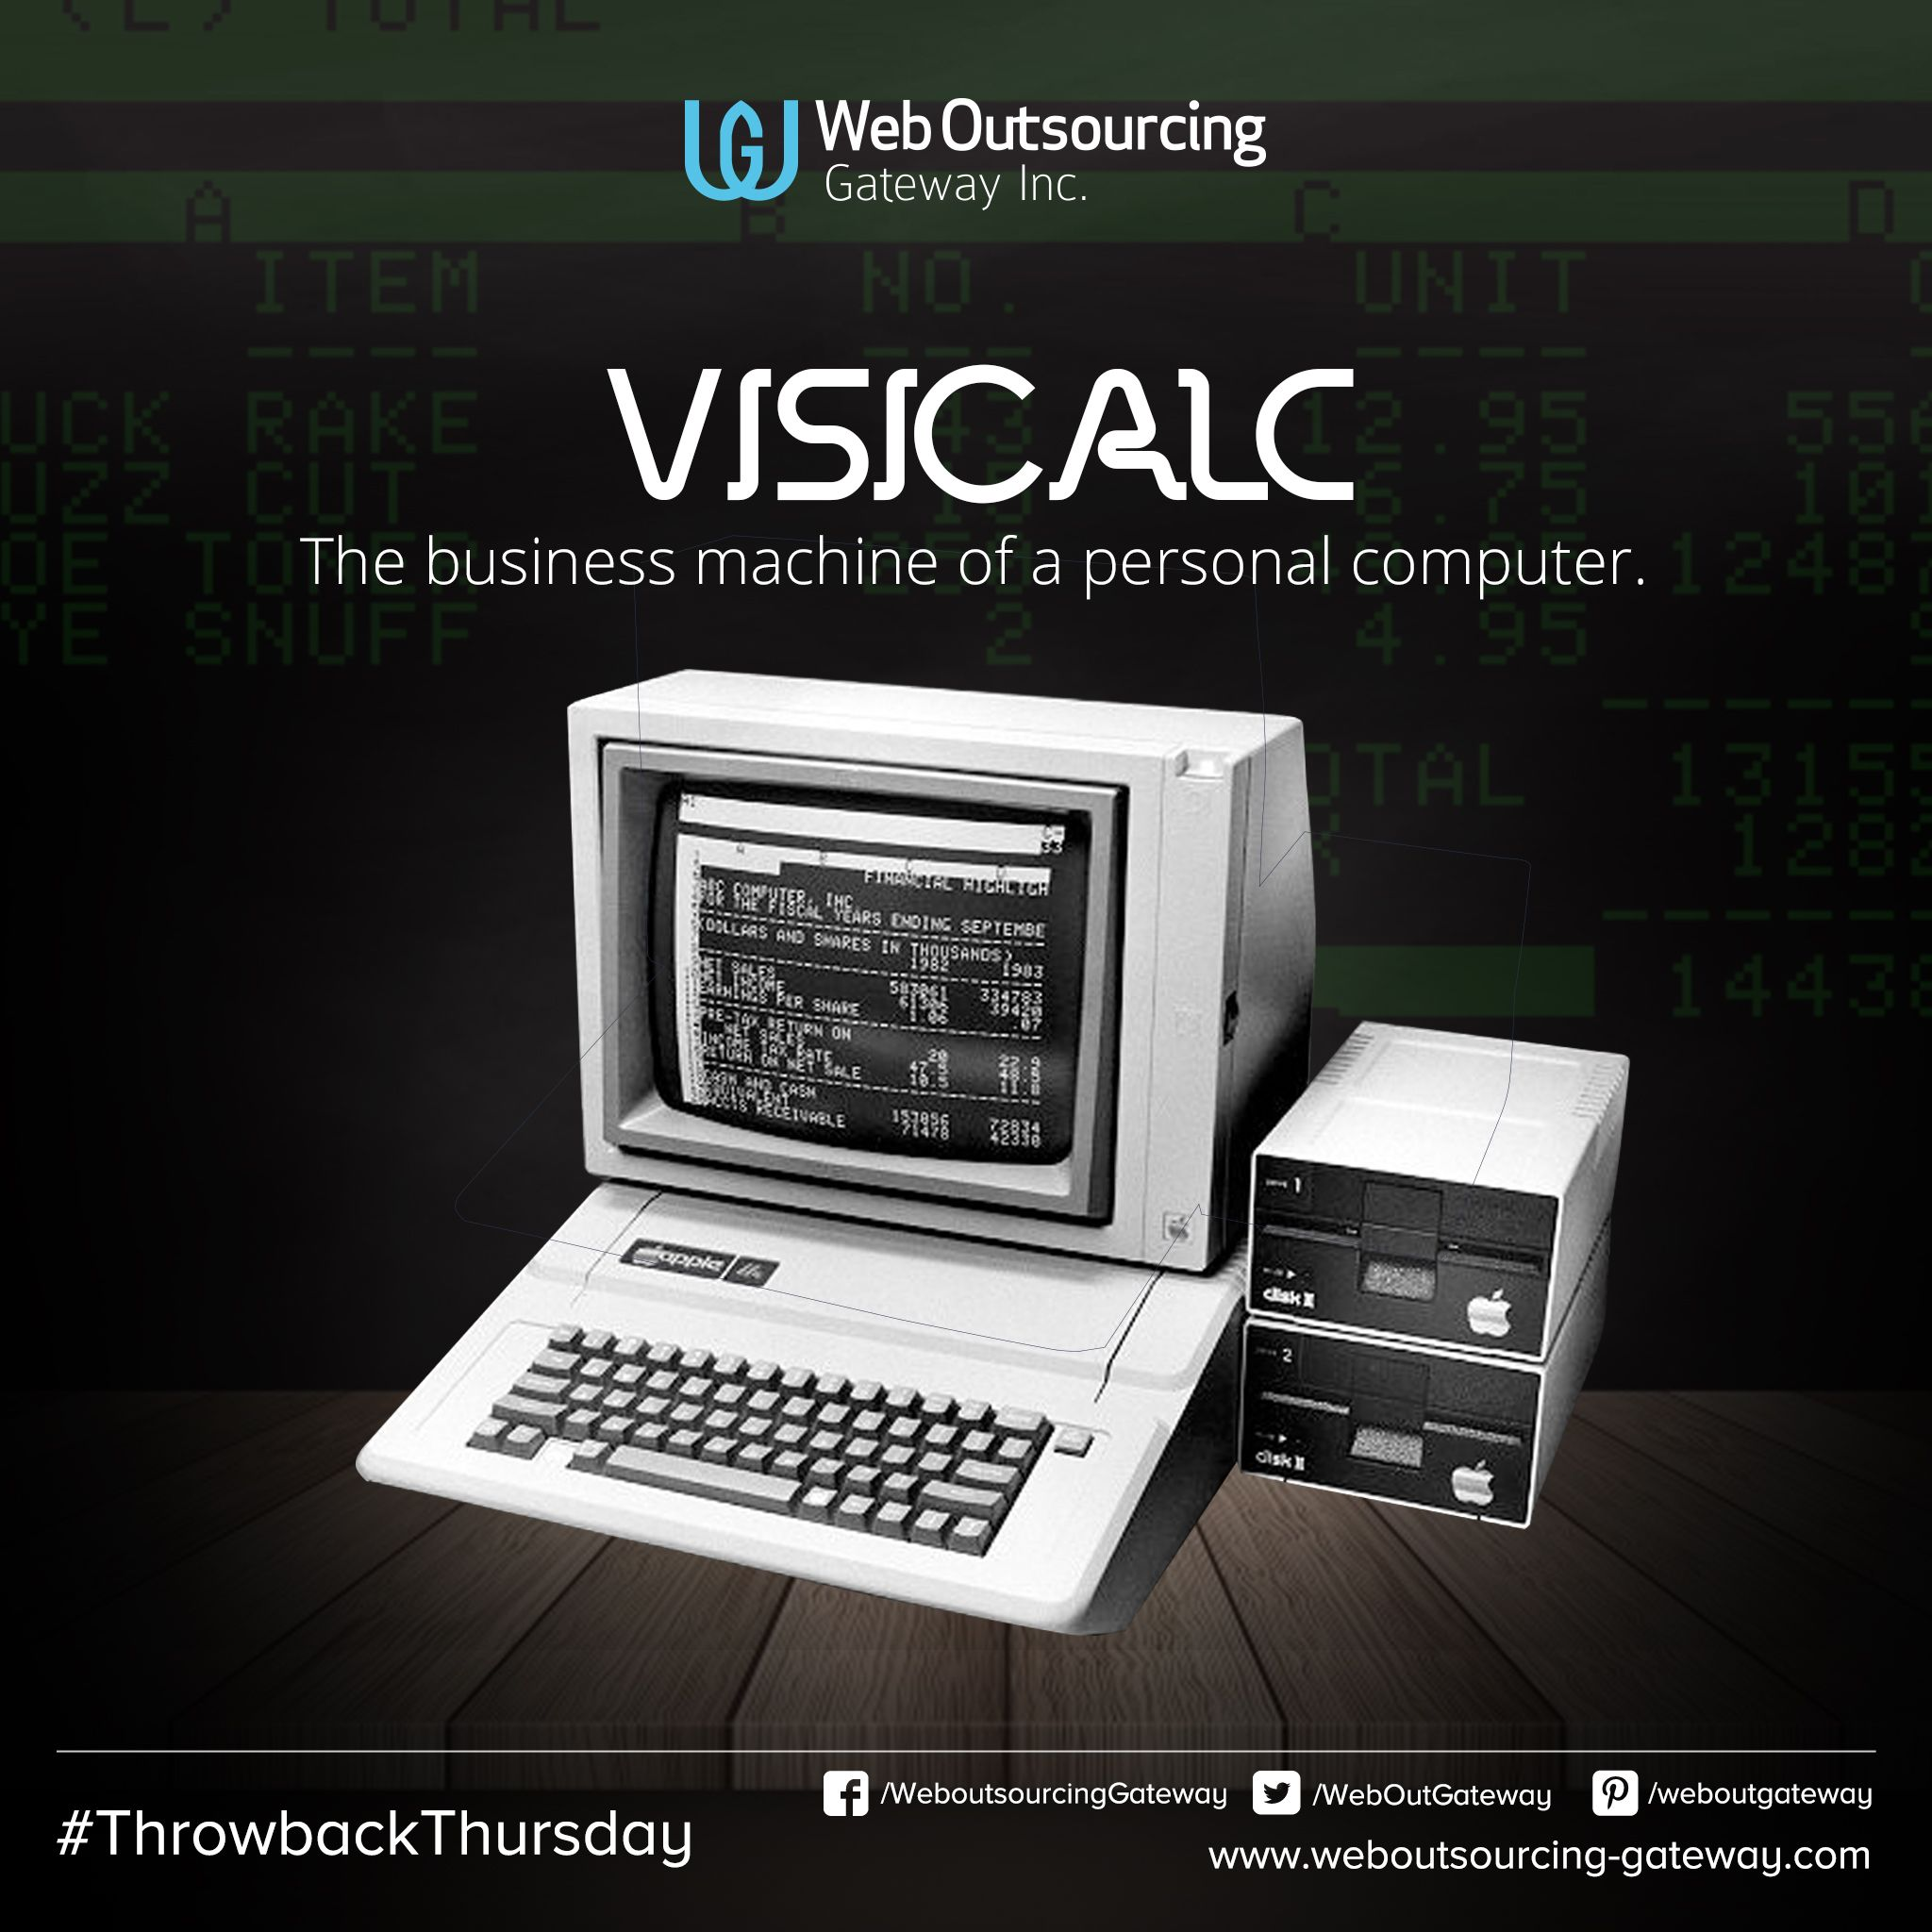 VisiCalc, the business machine of a personal computer